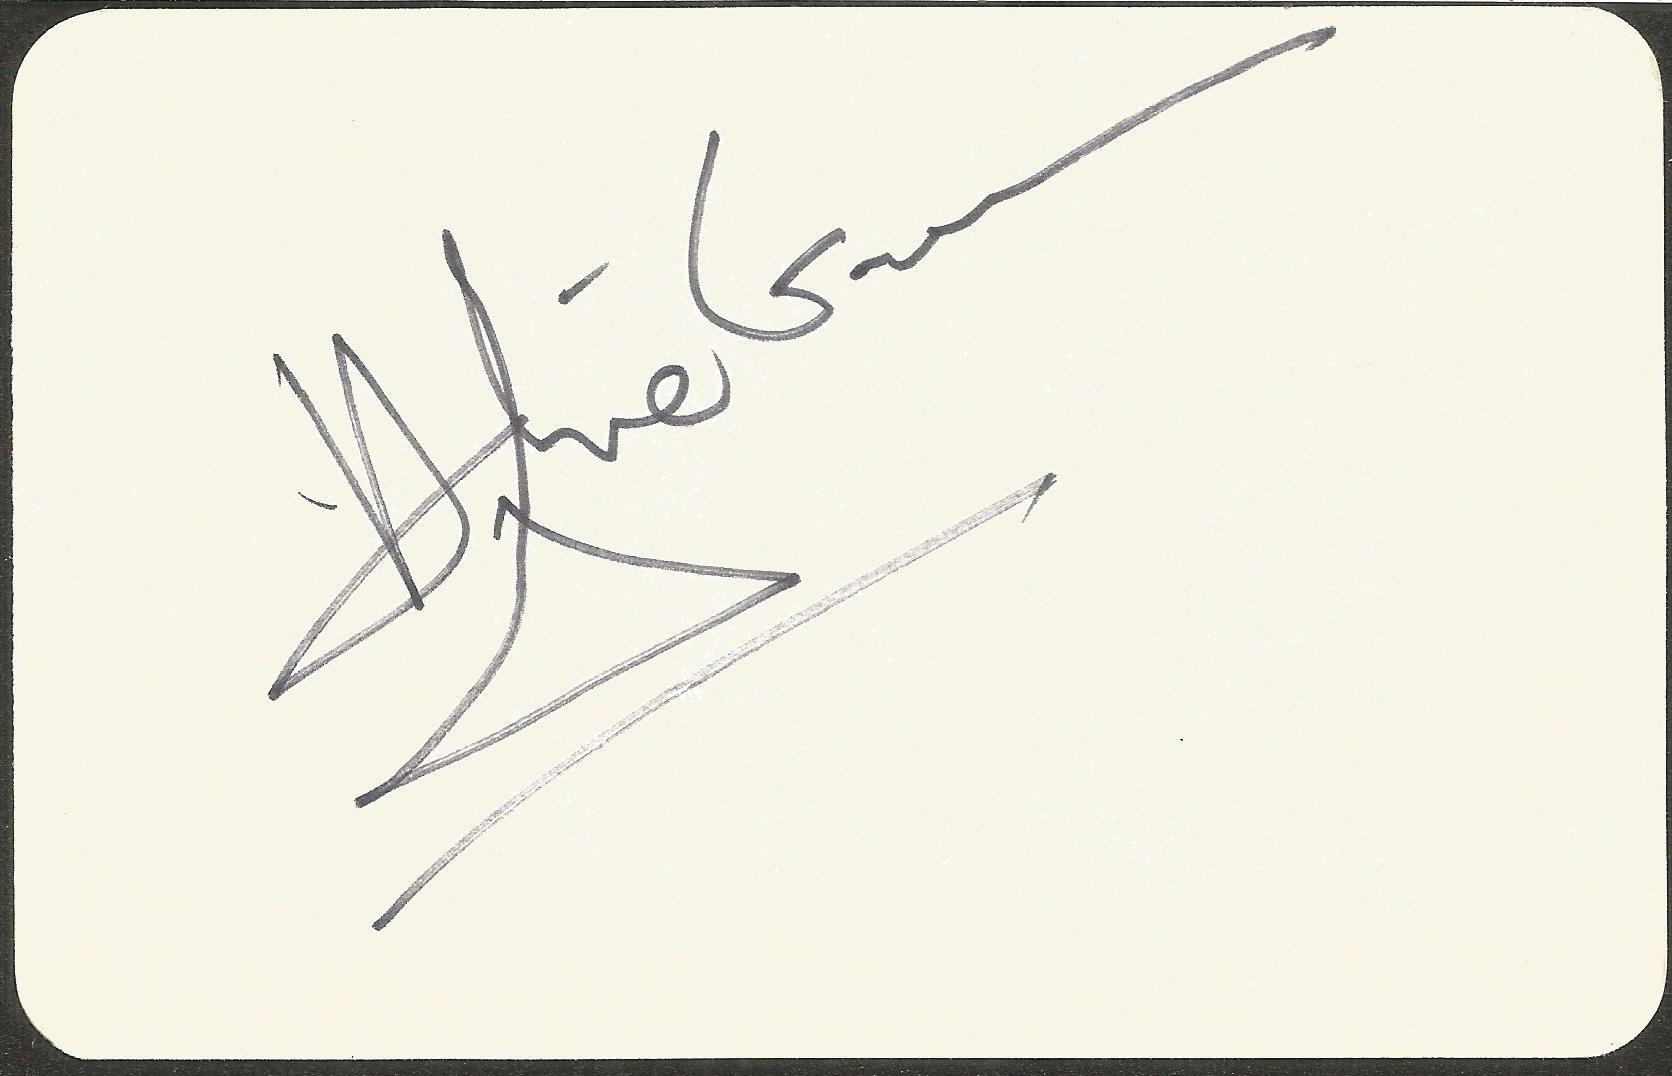 Hughie Green signed 4 x3 cream card. Good condition. All autographs come with a Certificate of